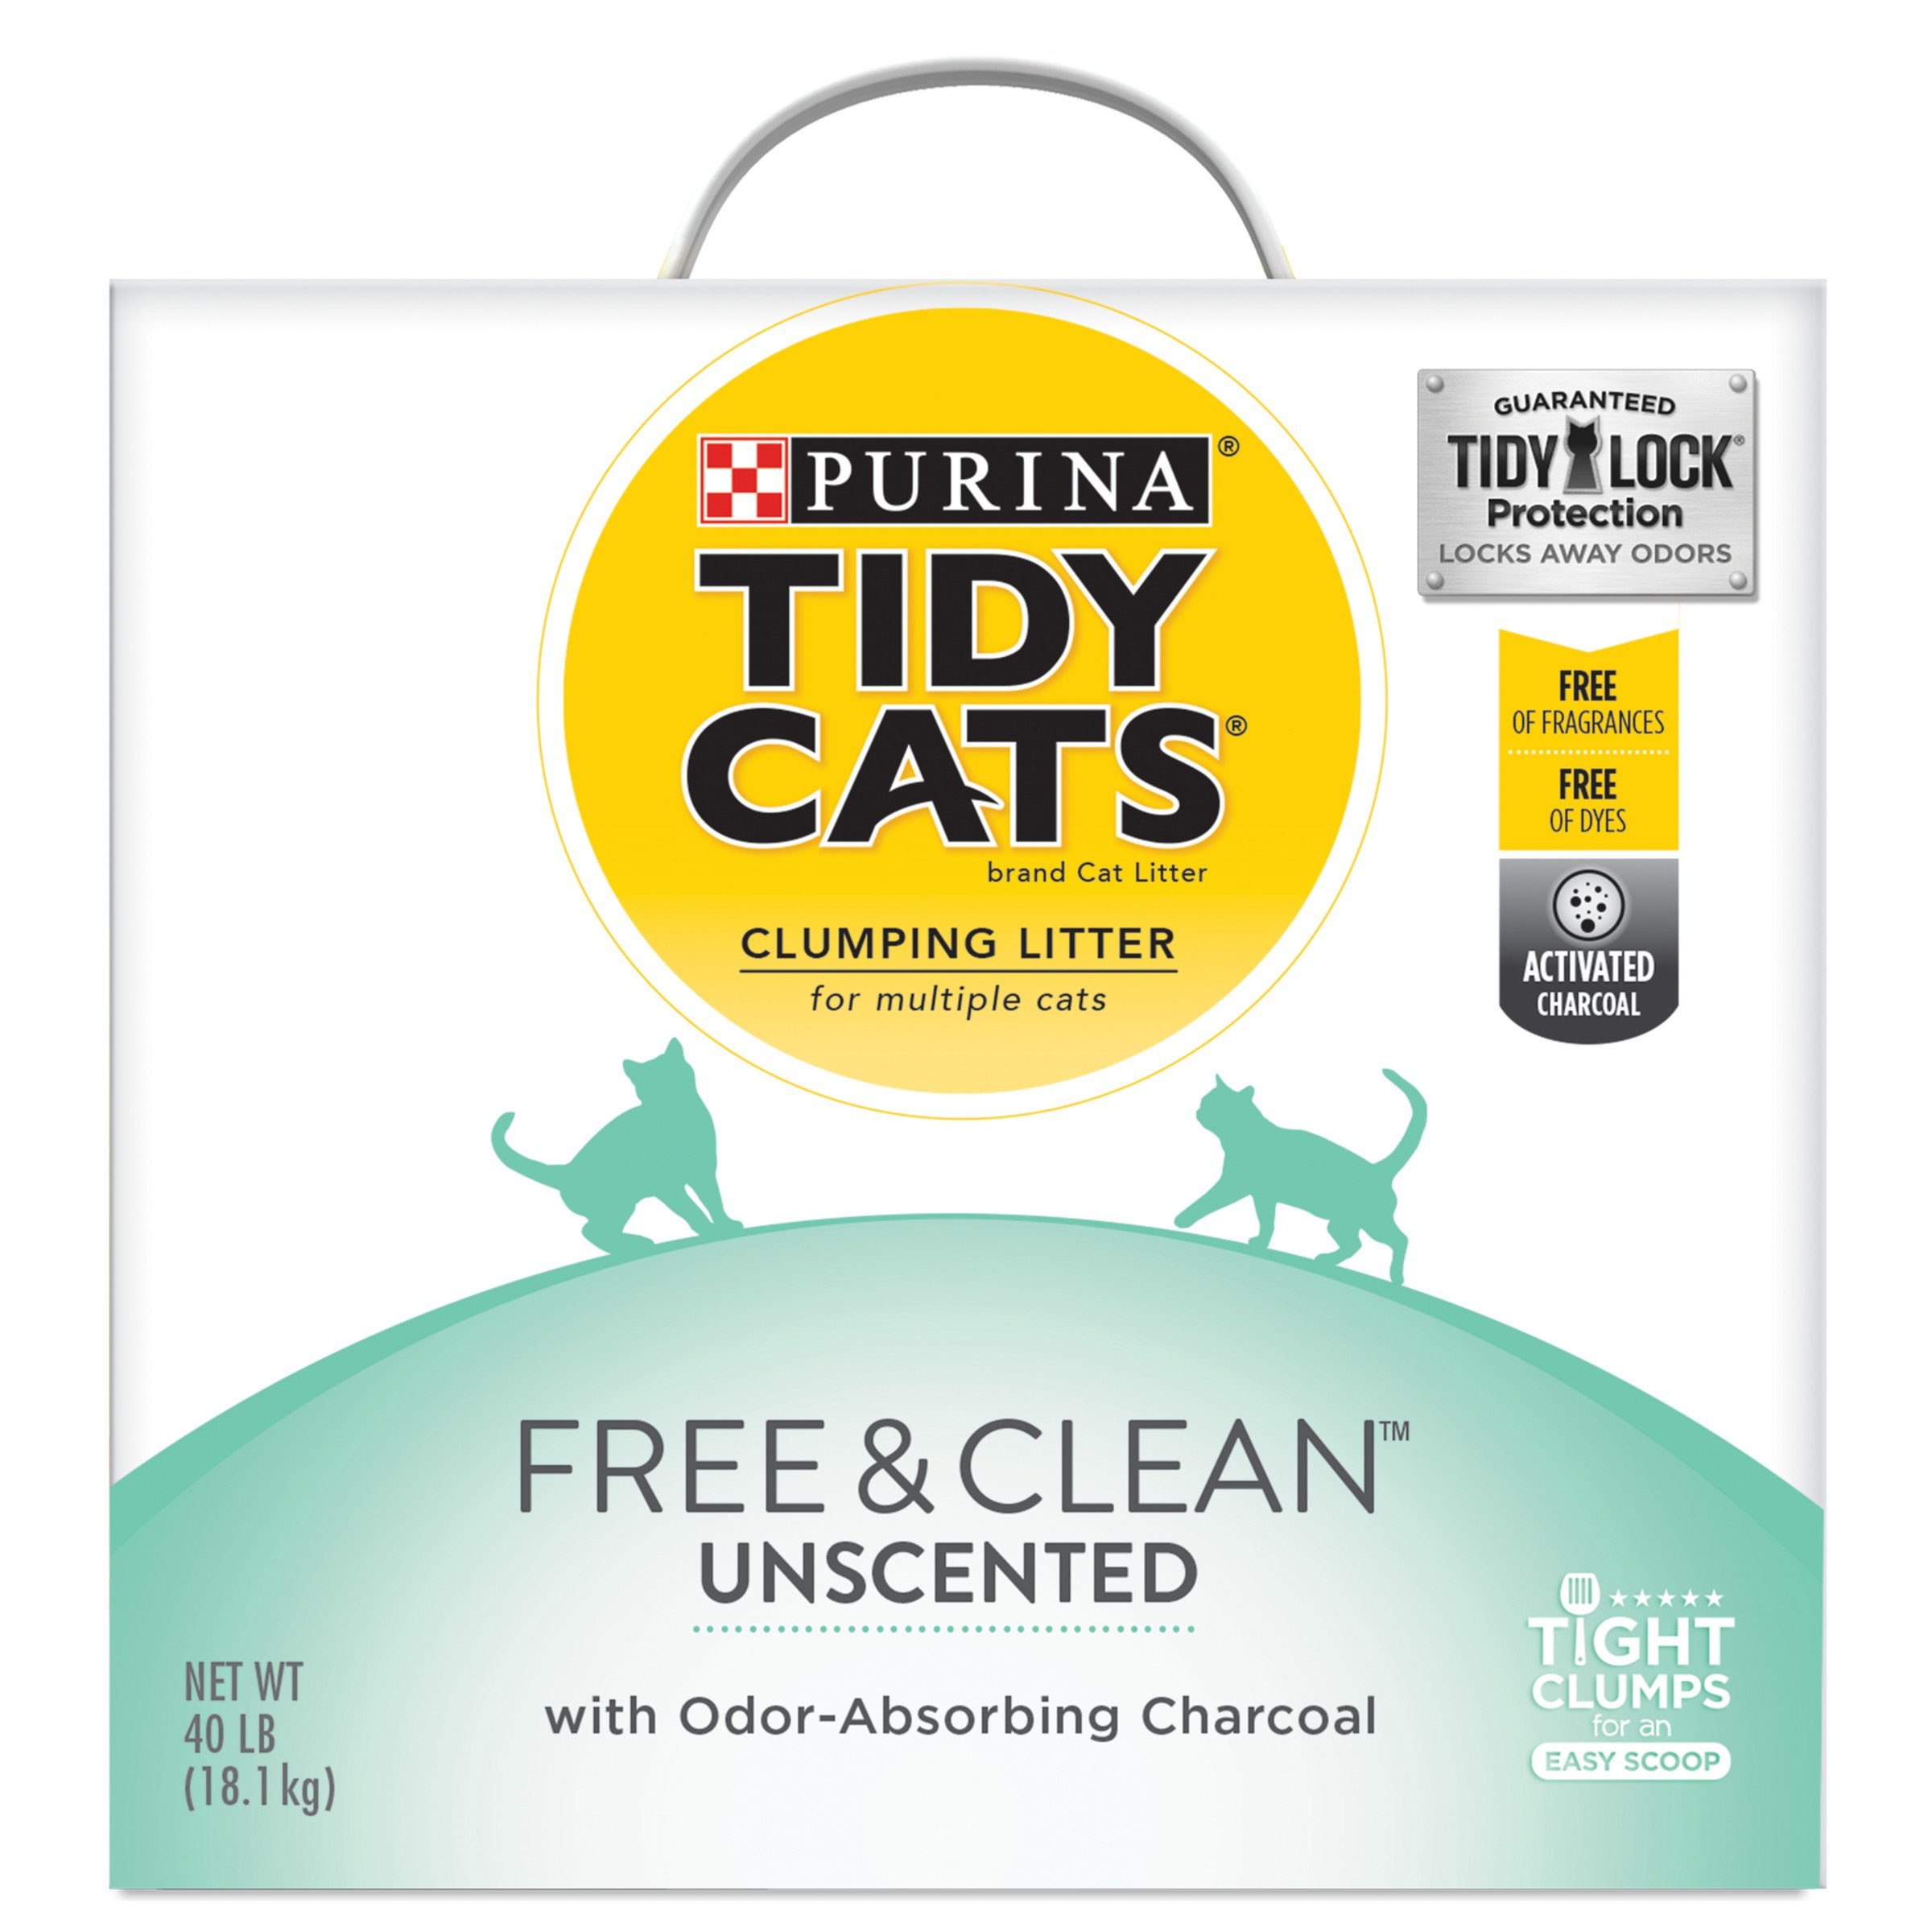 Purina Tidy Cats Clumping Cat Litter, Free & Clean Unscented Multi Cat Litter - 40 lb. Box by Purina Tidy Cats